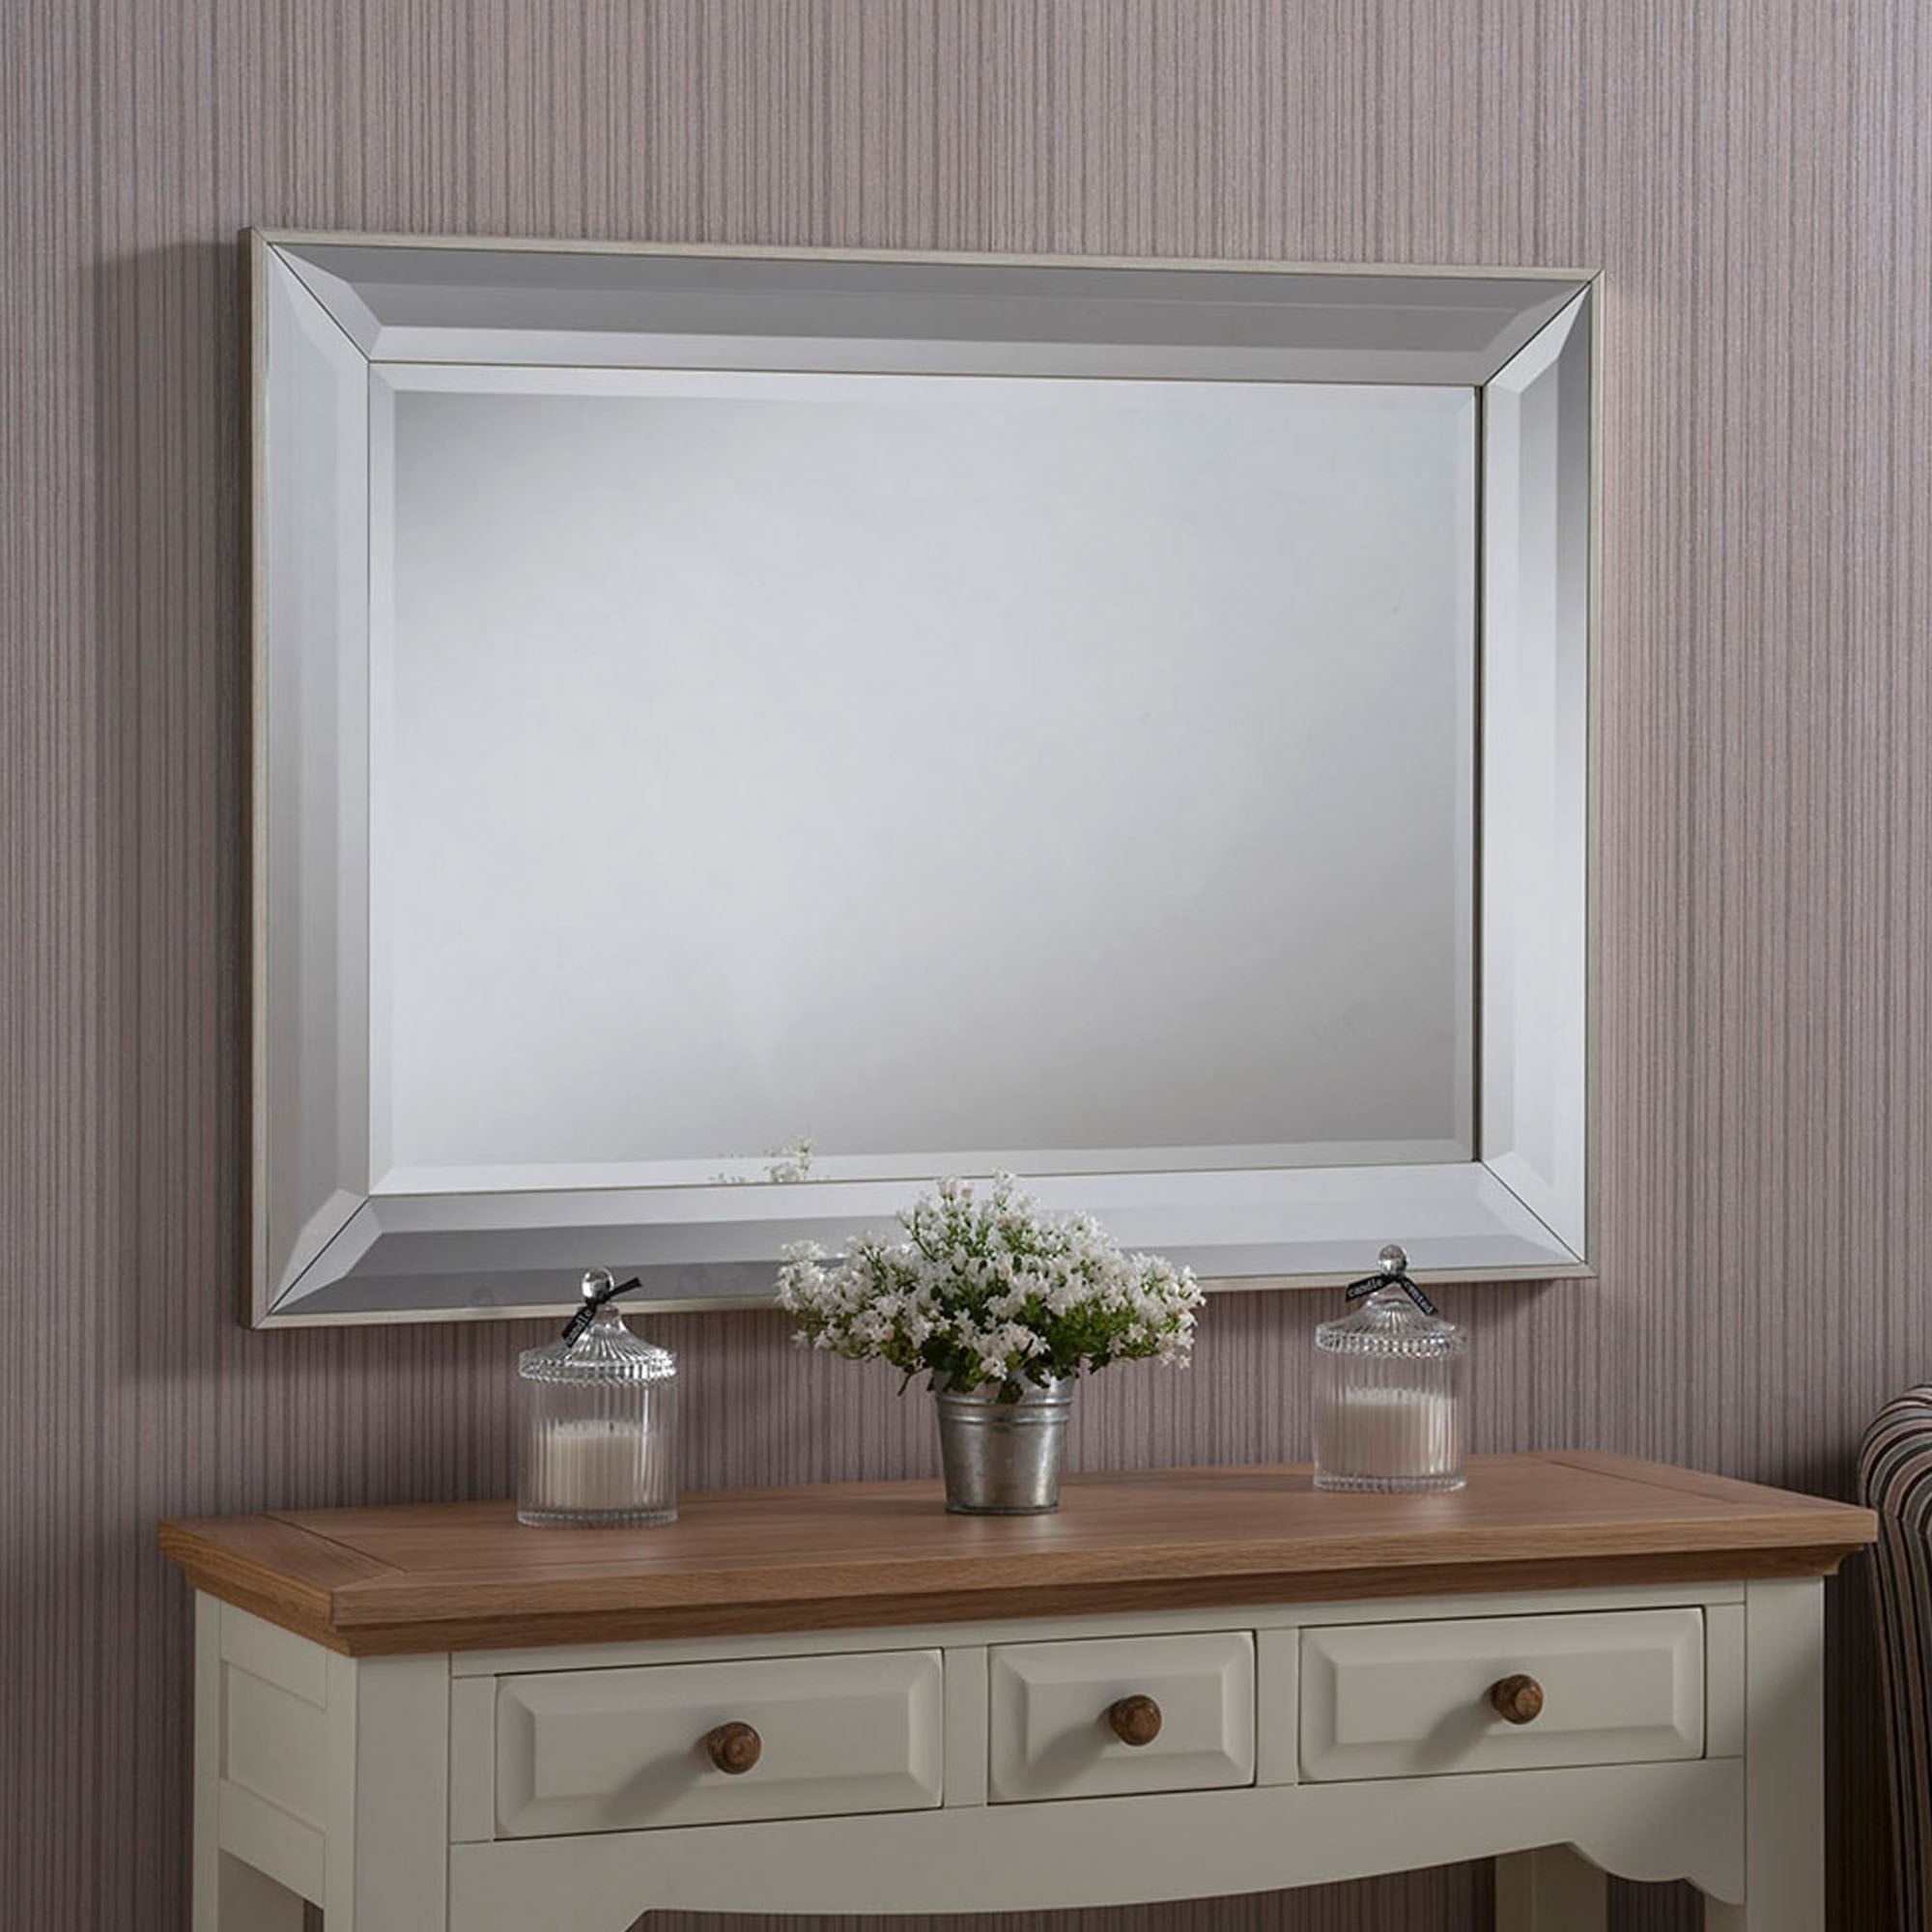 Contemporary Beveled Mirrored Wall Mirror Pertaining To Modern & Contemporary Beveled Wall Mirrors (View 14 of 20)